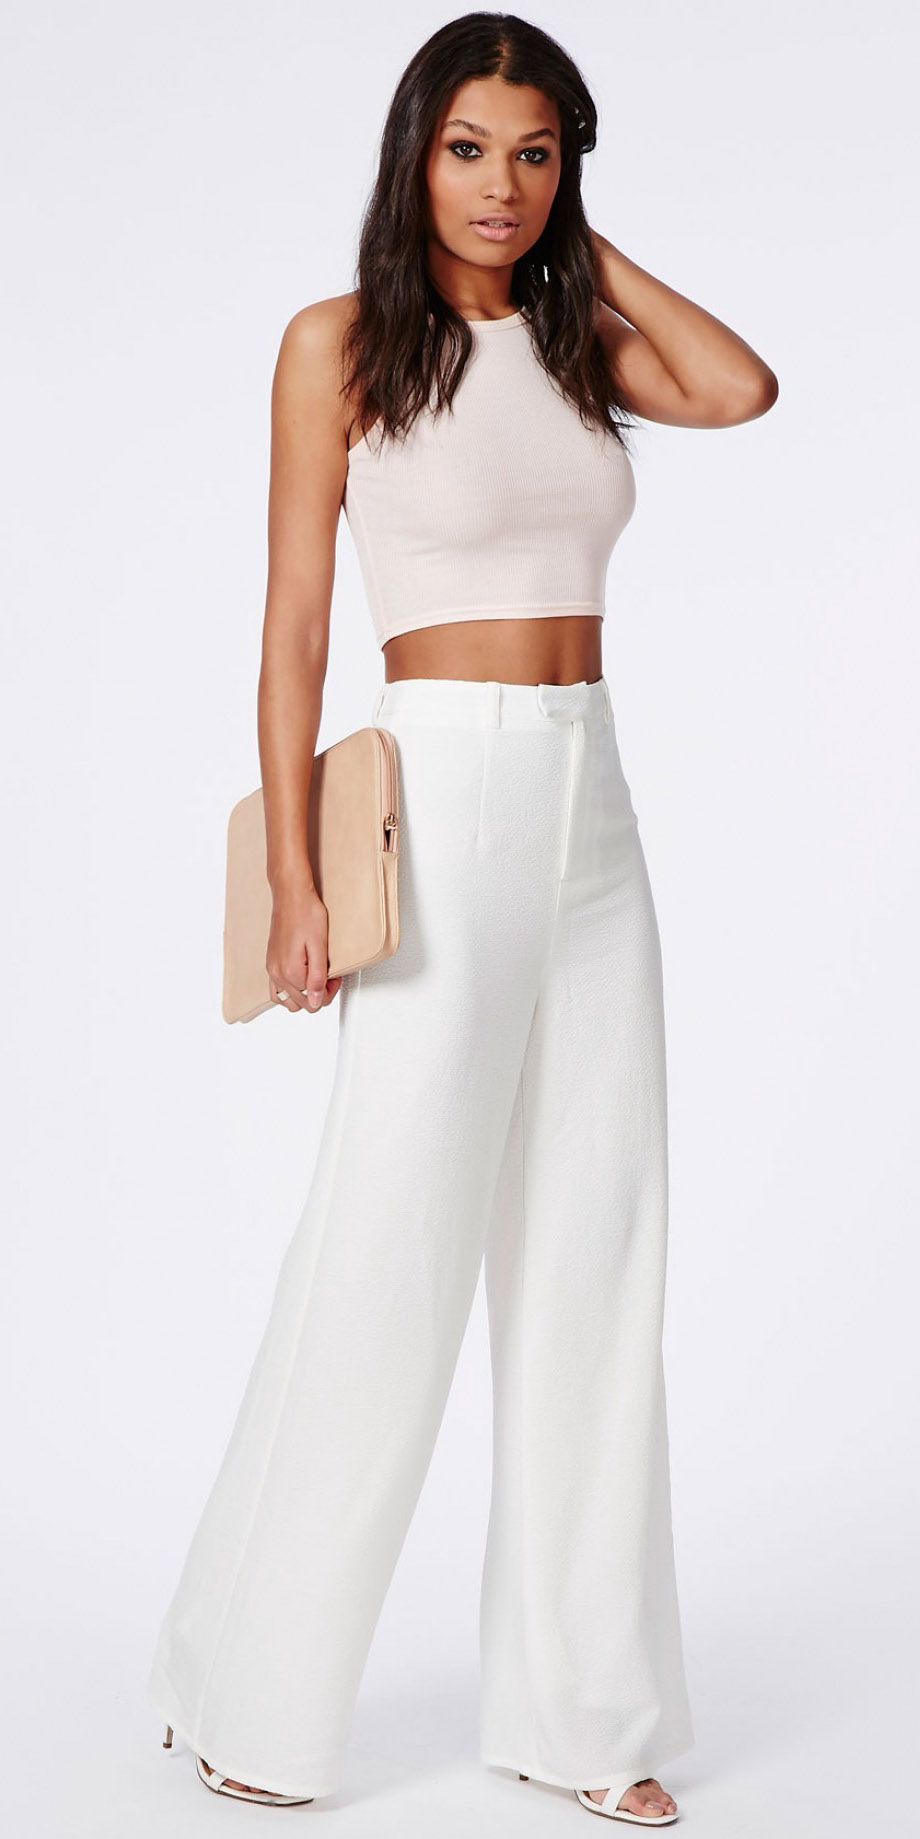 white-wideleg-pants-white-crop-top-white-shoe-sandalh-spring-summer-brun-dinner.jpeg